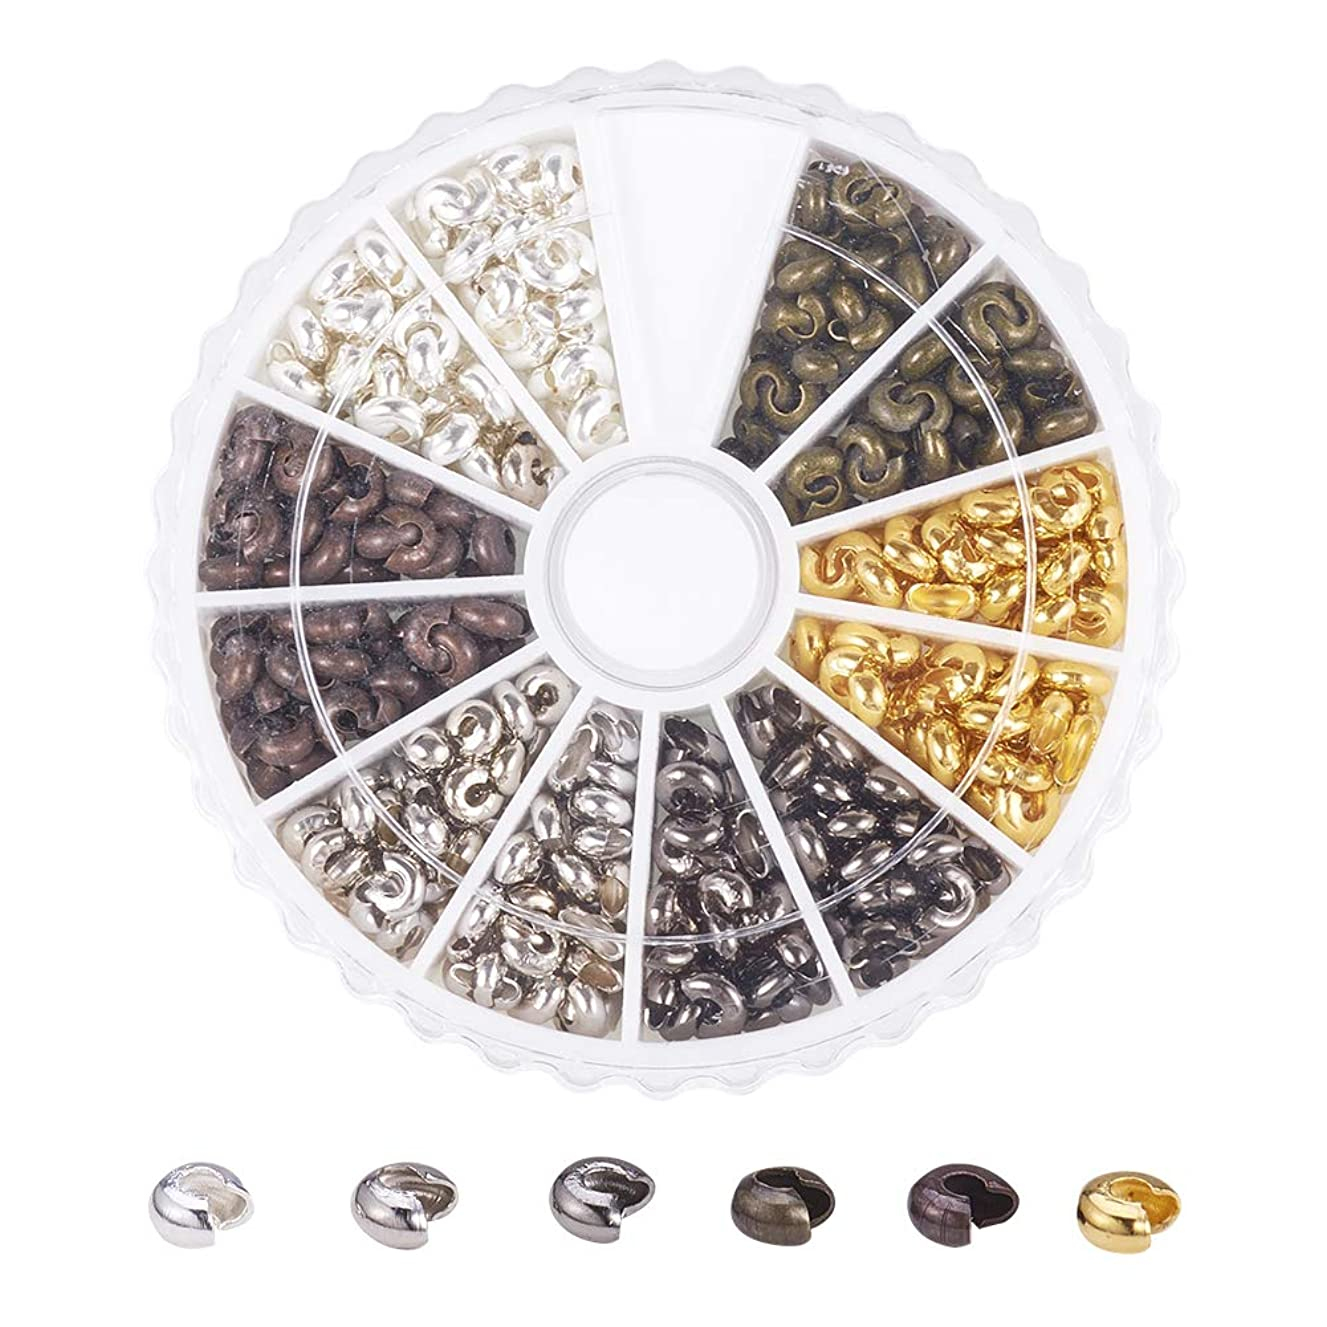 PandaHall Elite About 590 Pcs Iron Crimp Beads Covers Cord End Caps Width 3mm for Jewelry Making 6 Colors